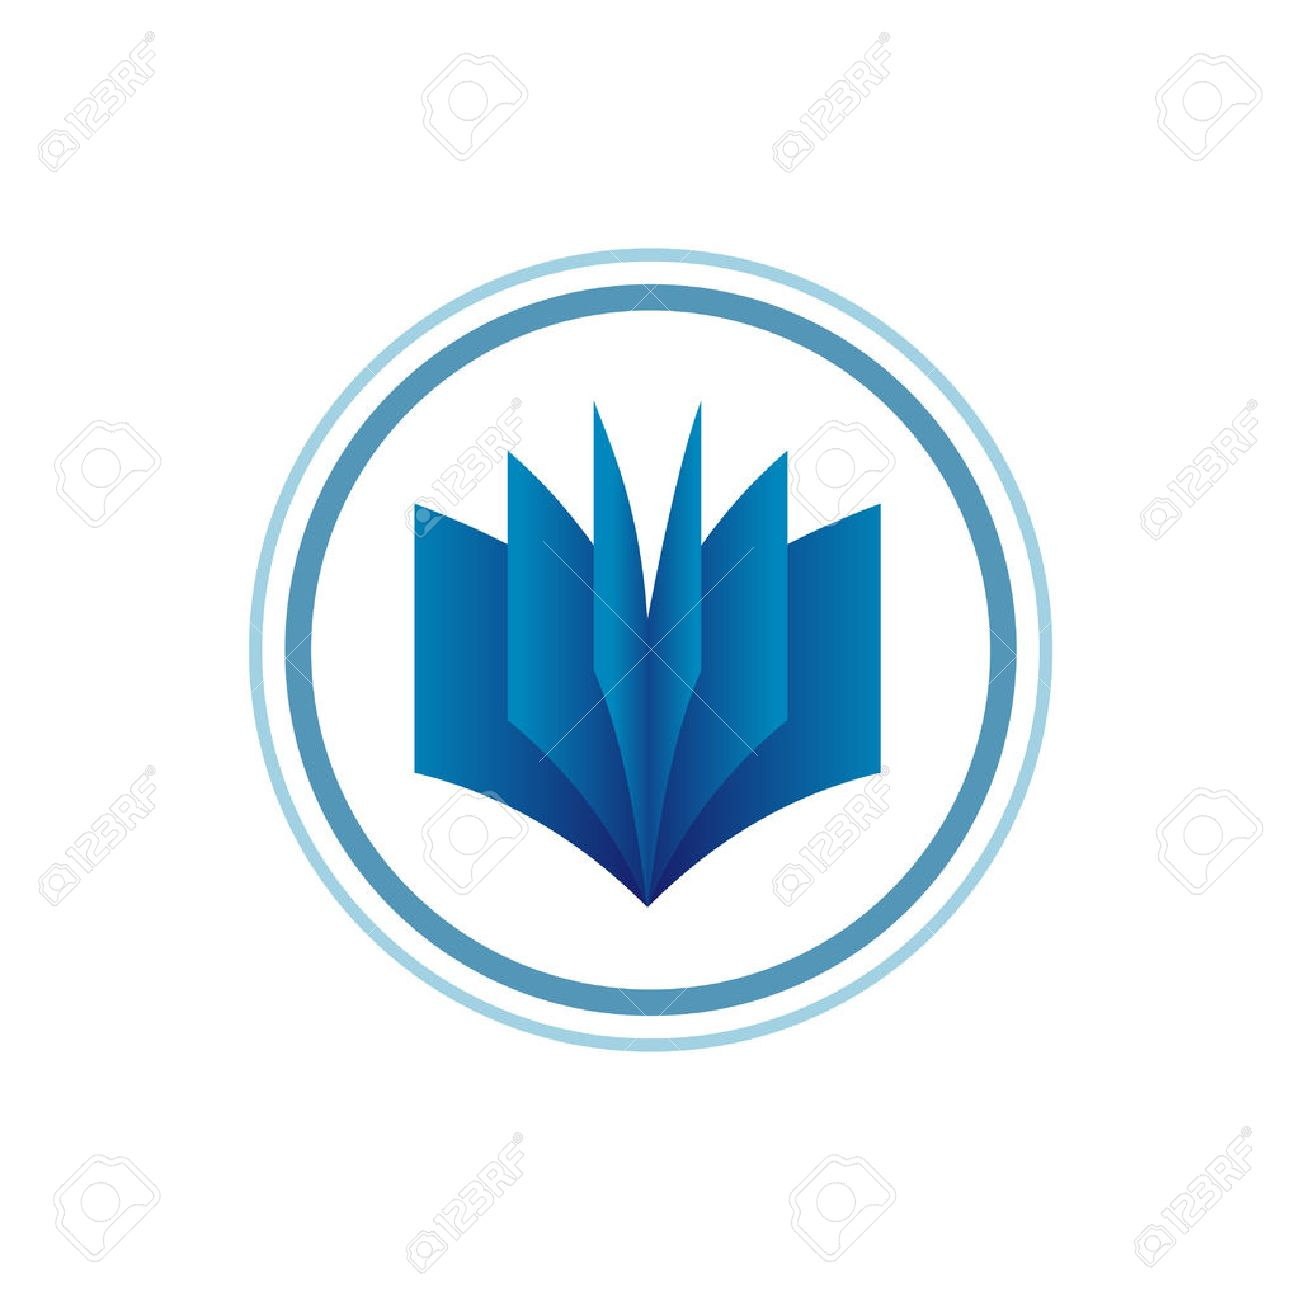 book logo template blue gradient style royalty free cliparts